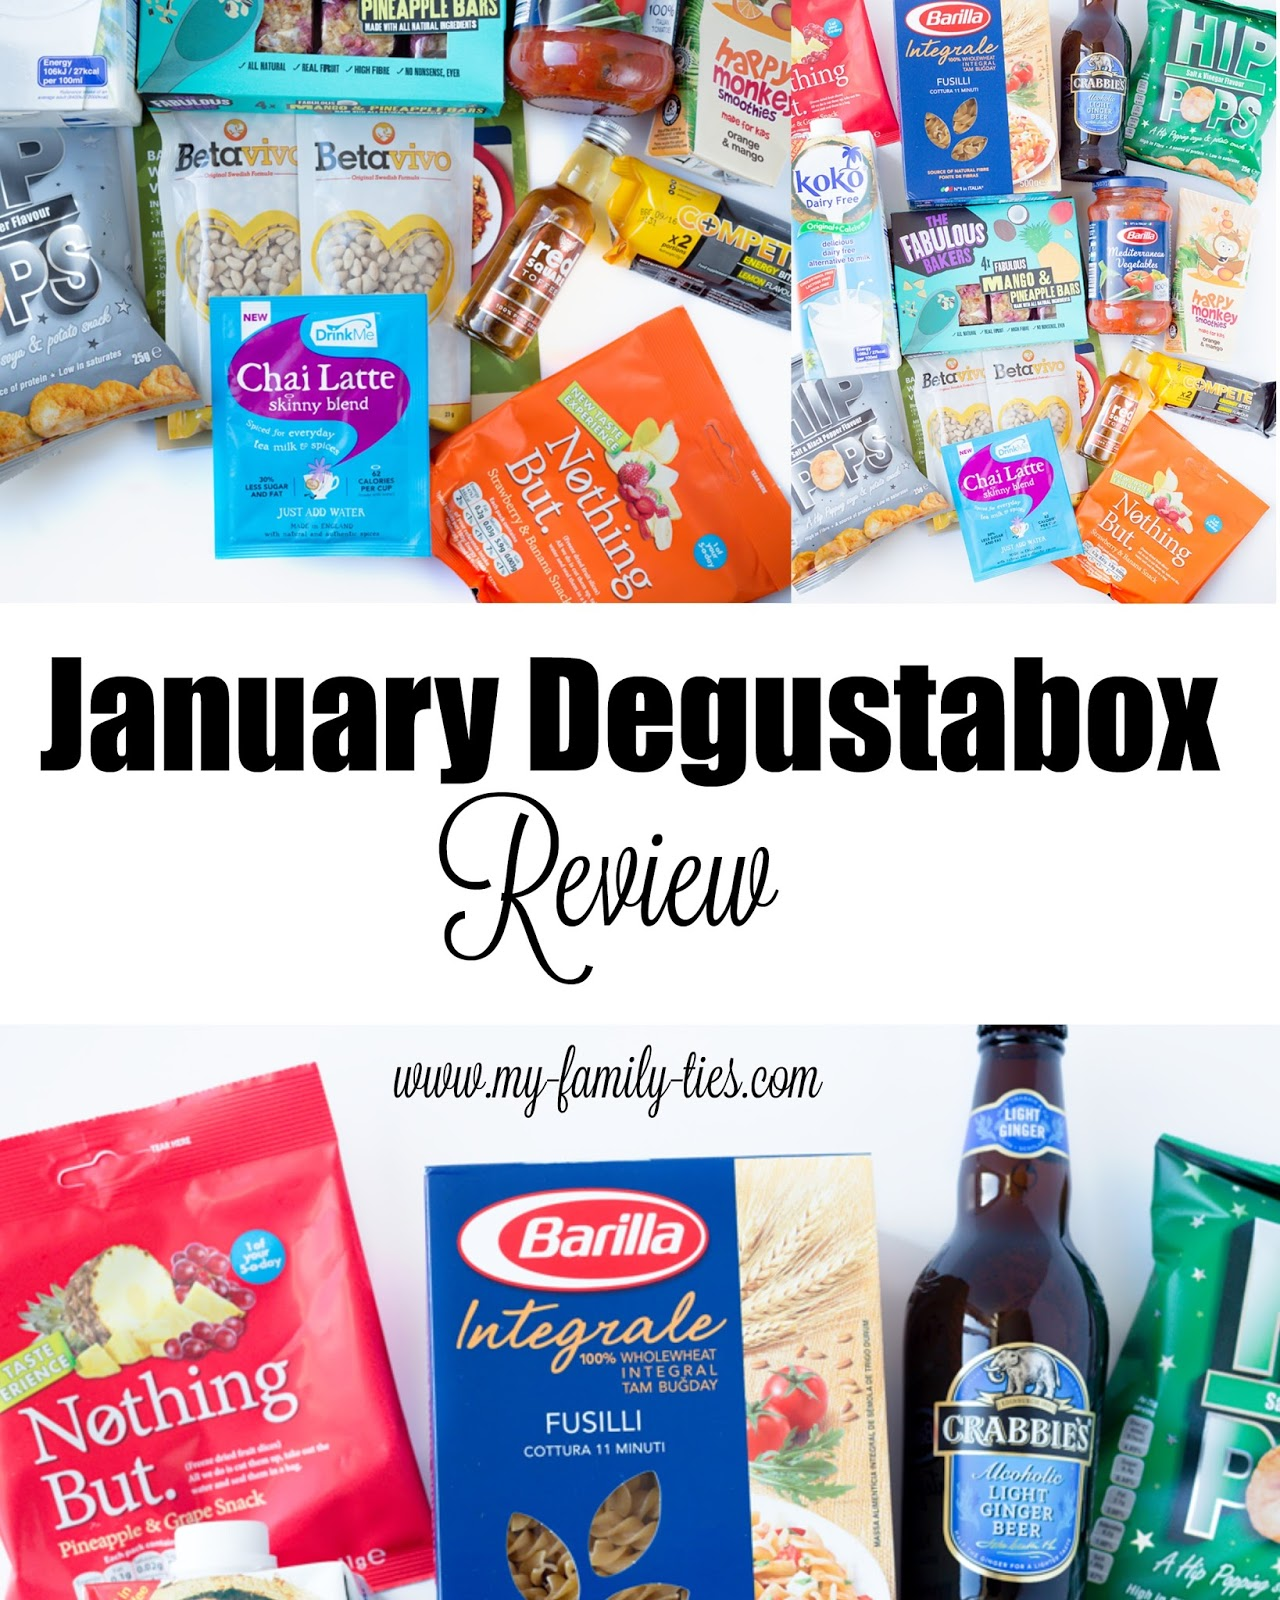 January Degustabox Review Photos By My Family Ties Blog www.my-family-ties.com